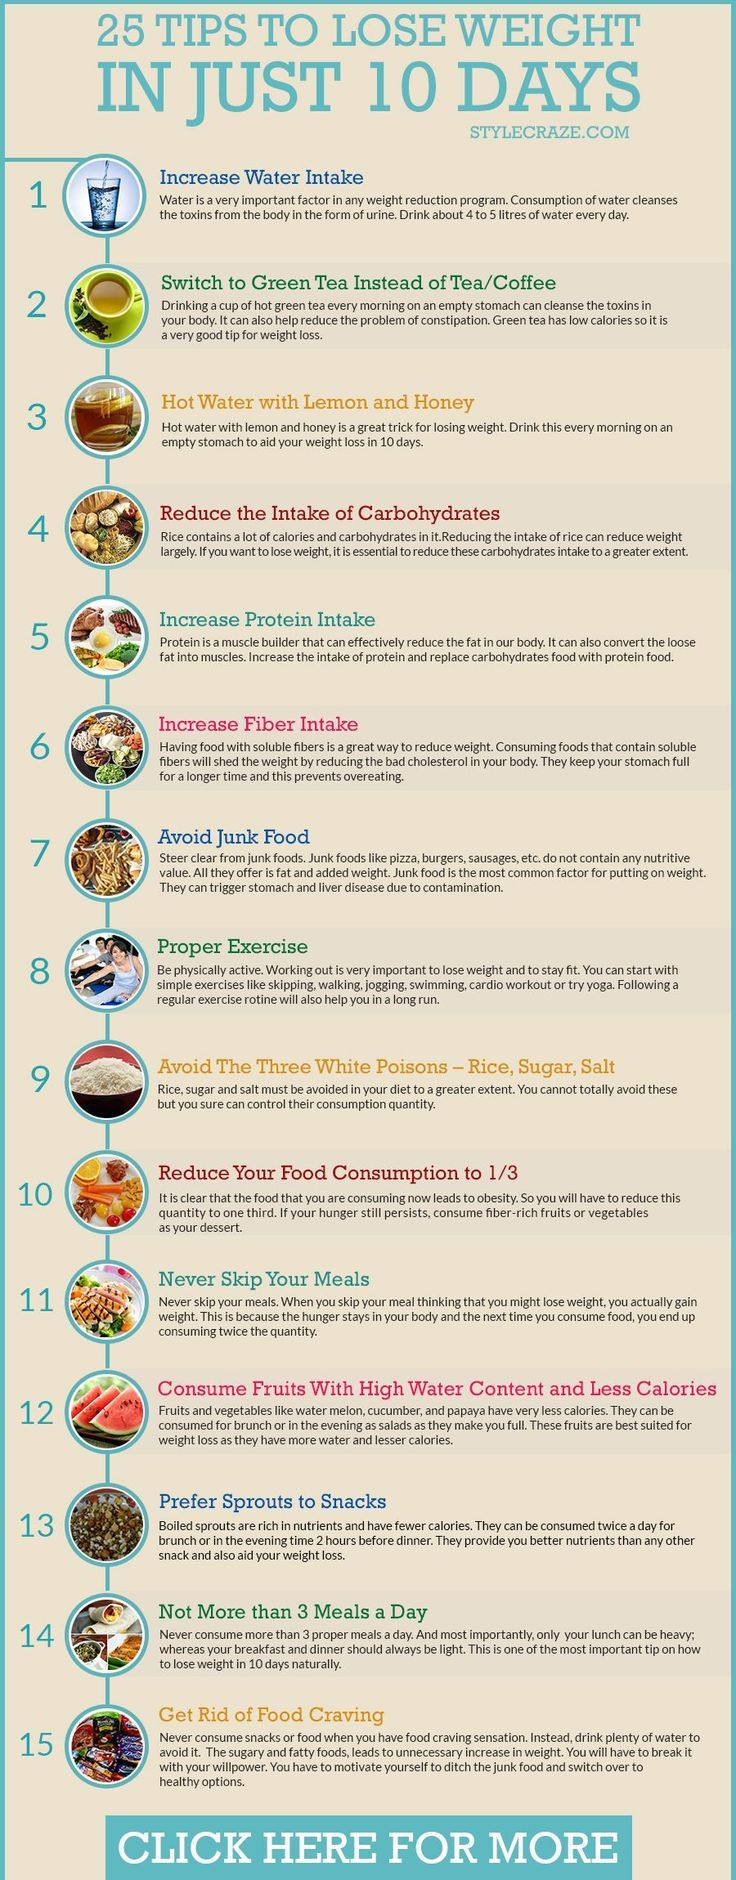 3761 best lose weight get healthy images on pinterest healthy 3761 best lose weight get healthy images on pinterest healthy nutrition eat healthy and exercise workouts ccuart Choice Image